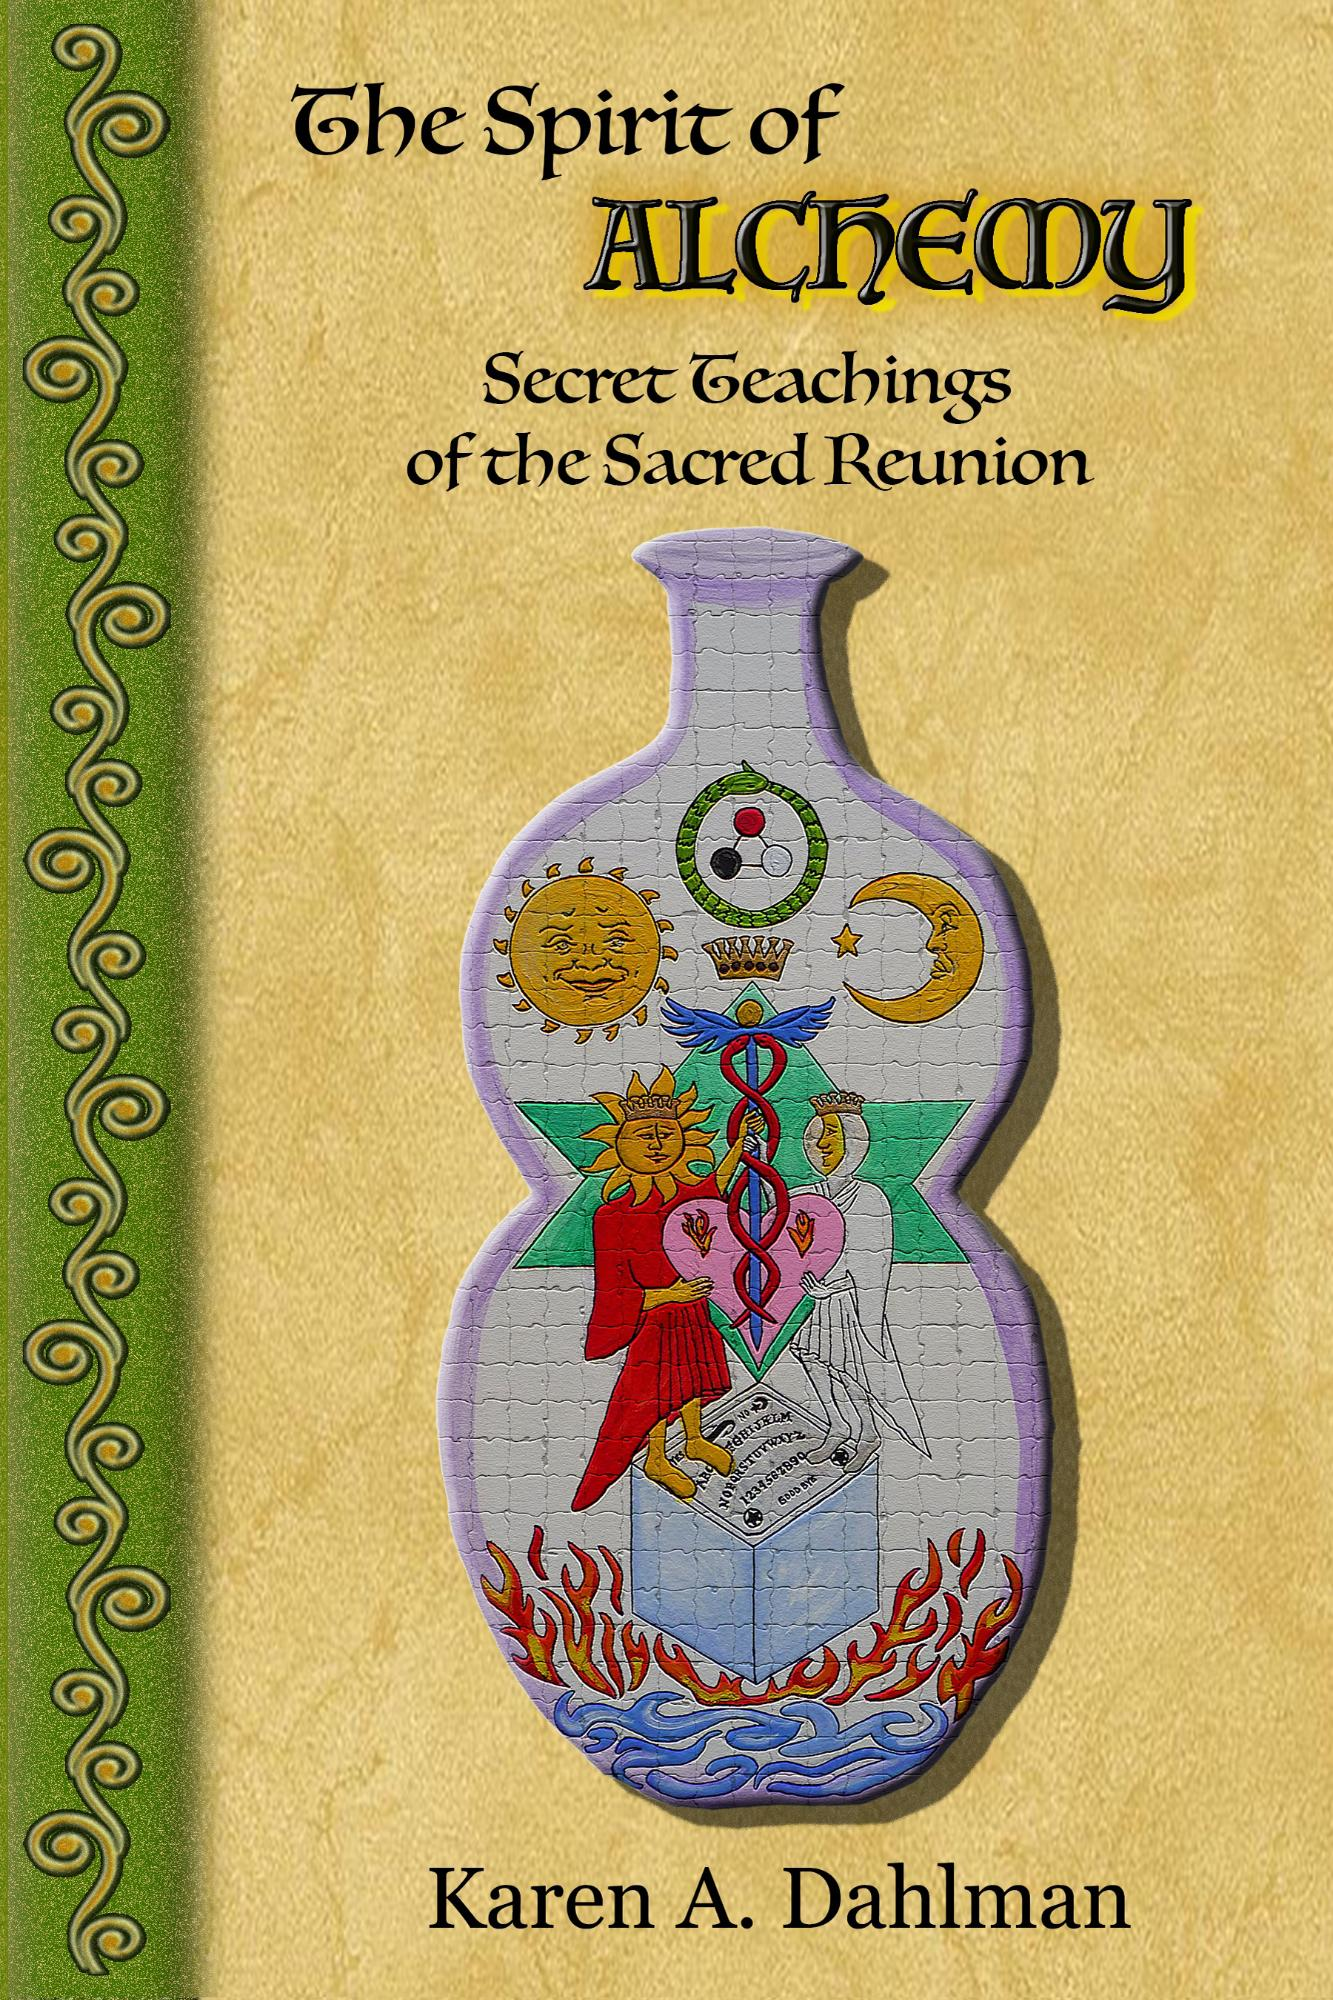 Press Release: The Spirit of Alchemy: Secret Teachings of the Sacred Reunion – Available on Amazon